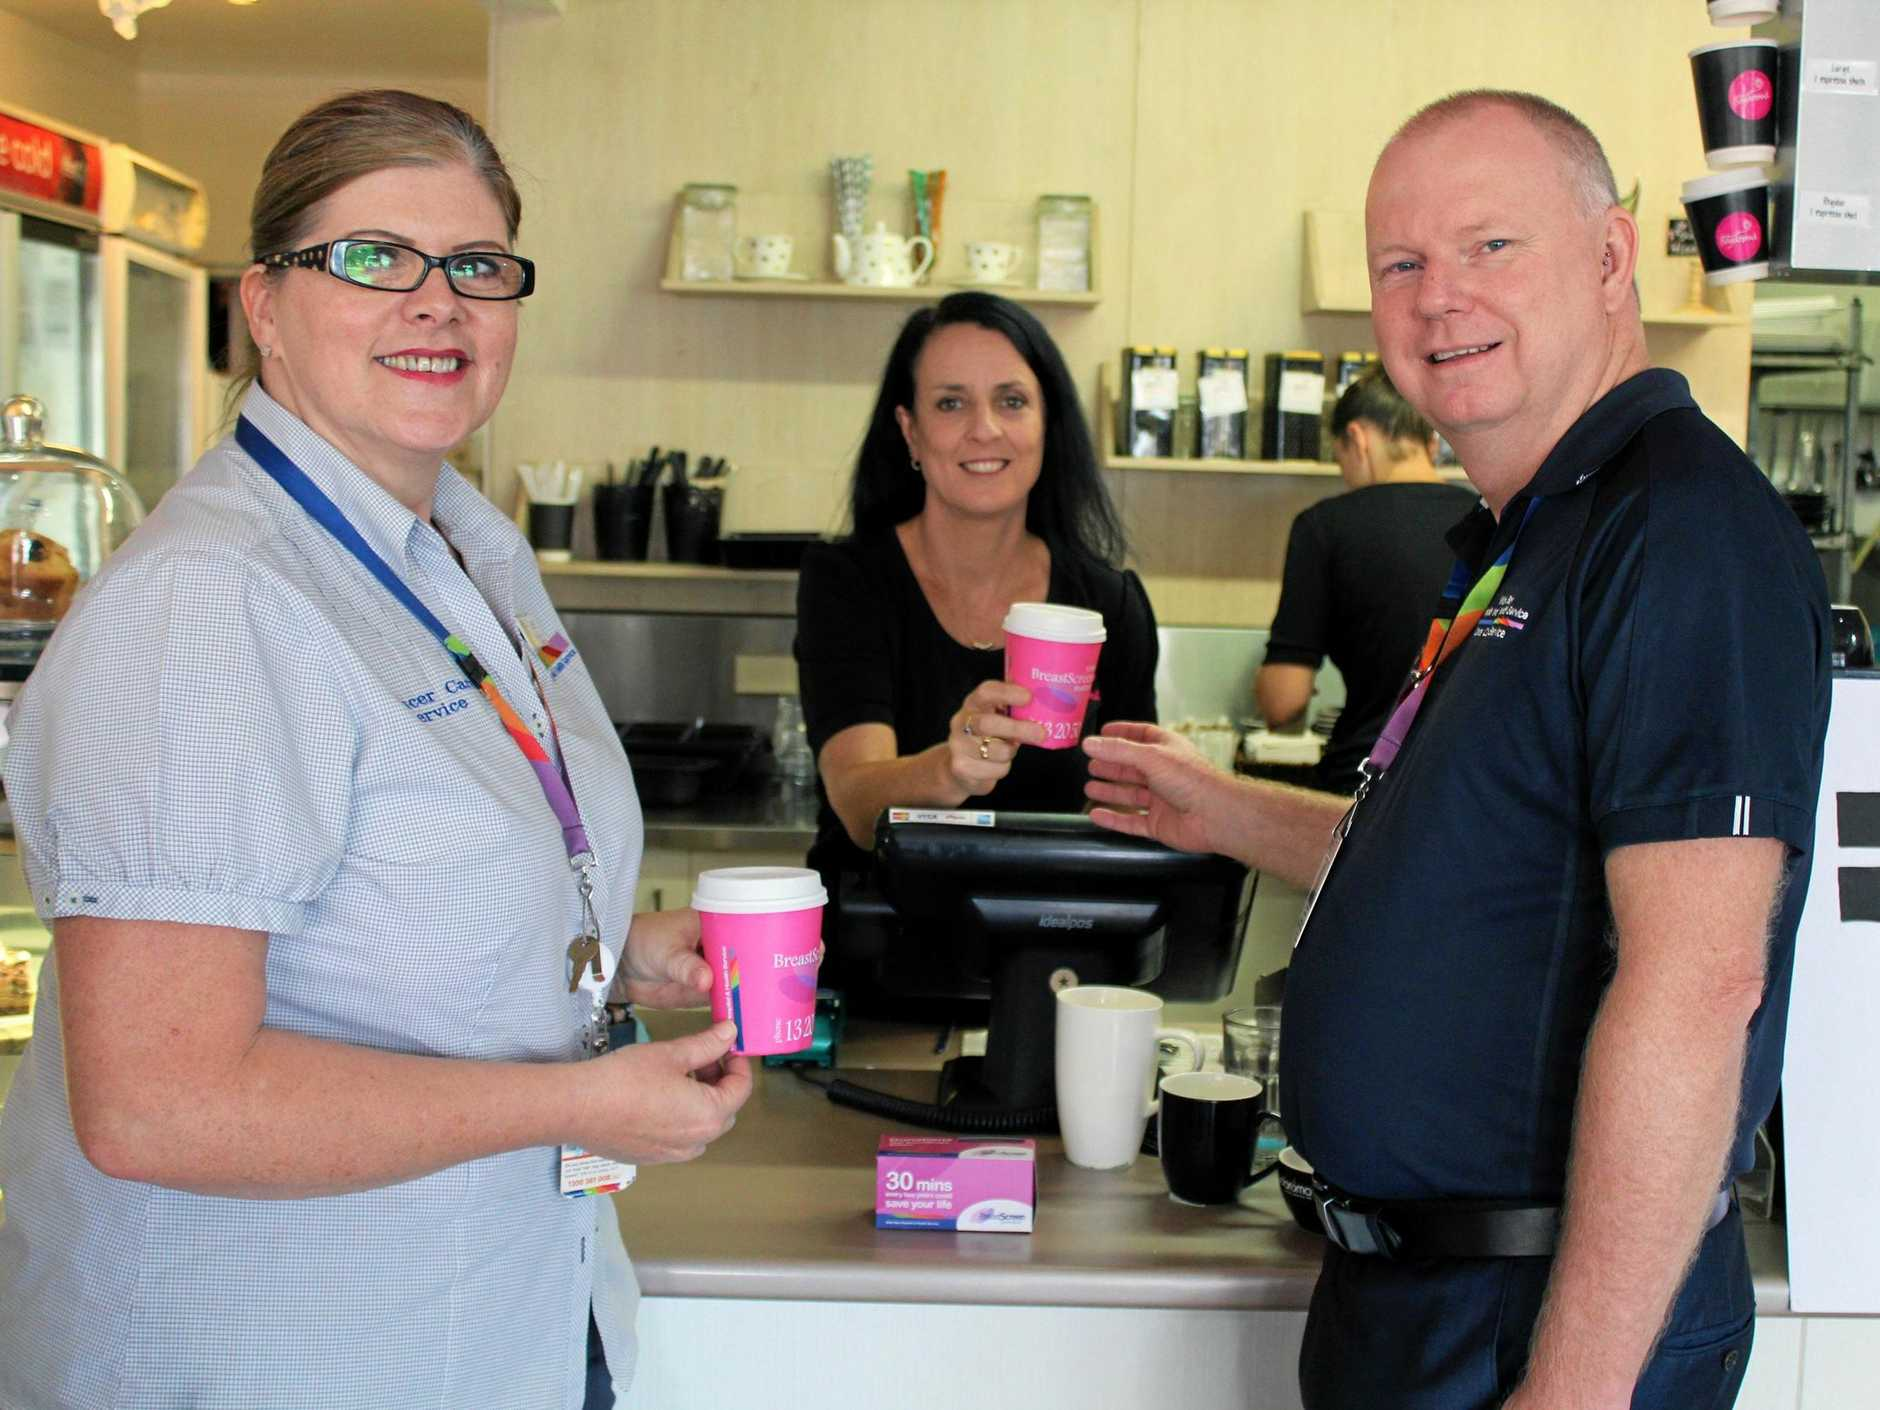 #DRINKPINK: Julie Evans, Kerry Darlington-Day and Ray Johnson encourage locals to hashtag for cancer awareness.